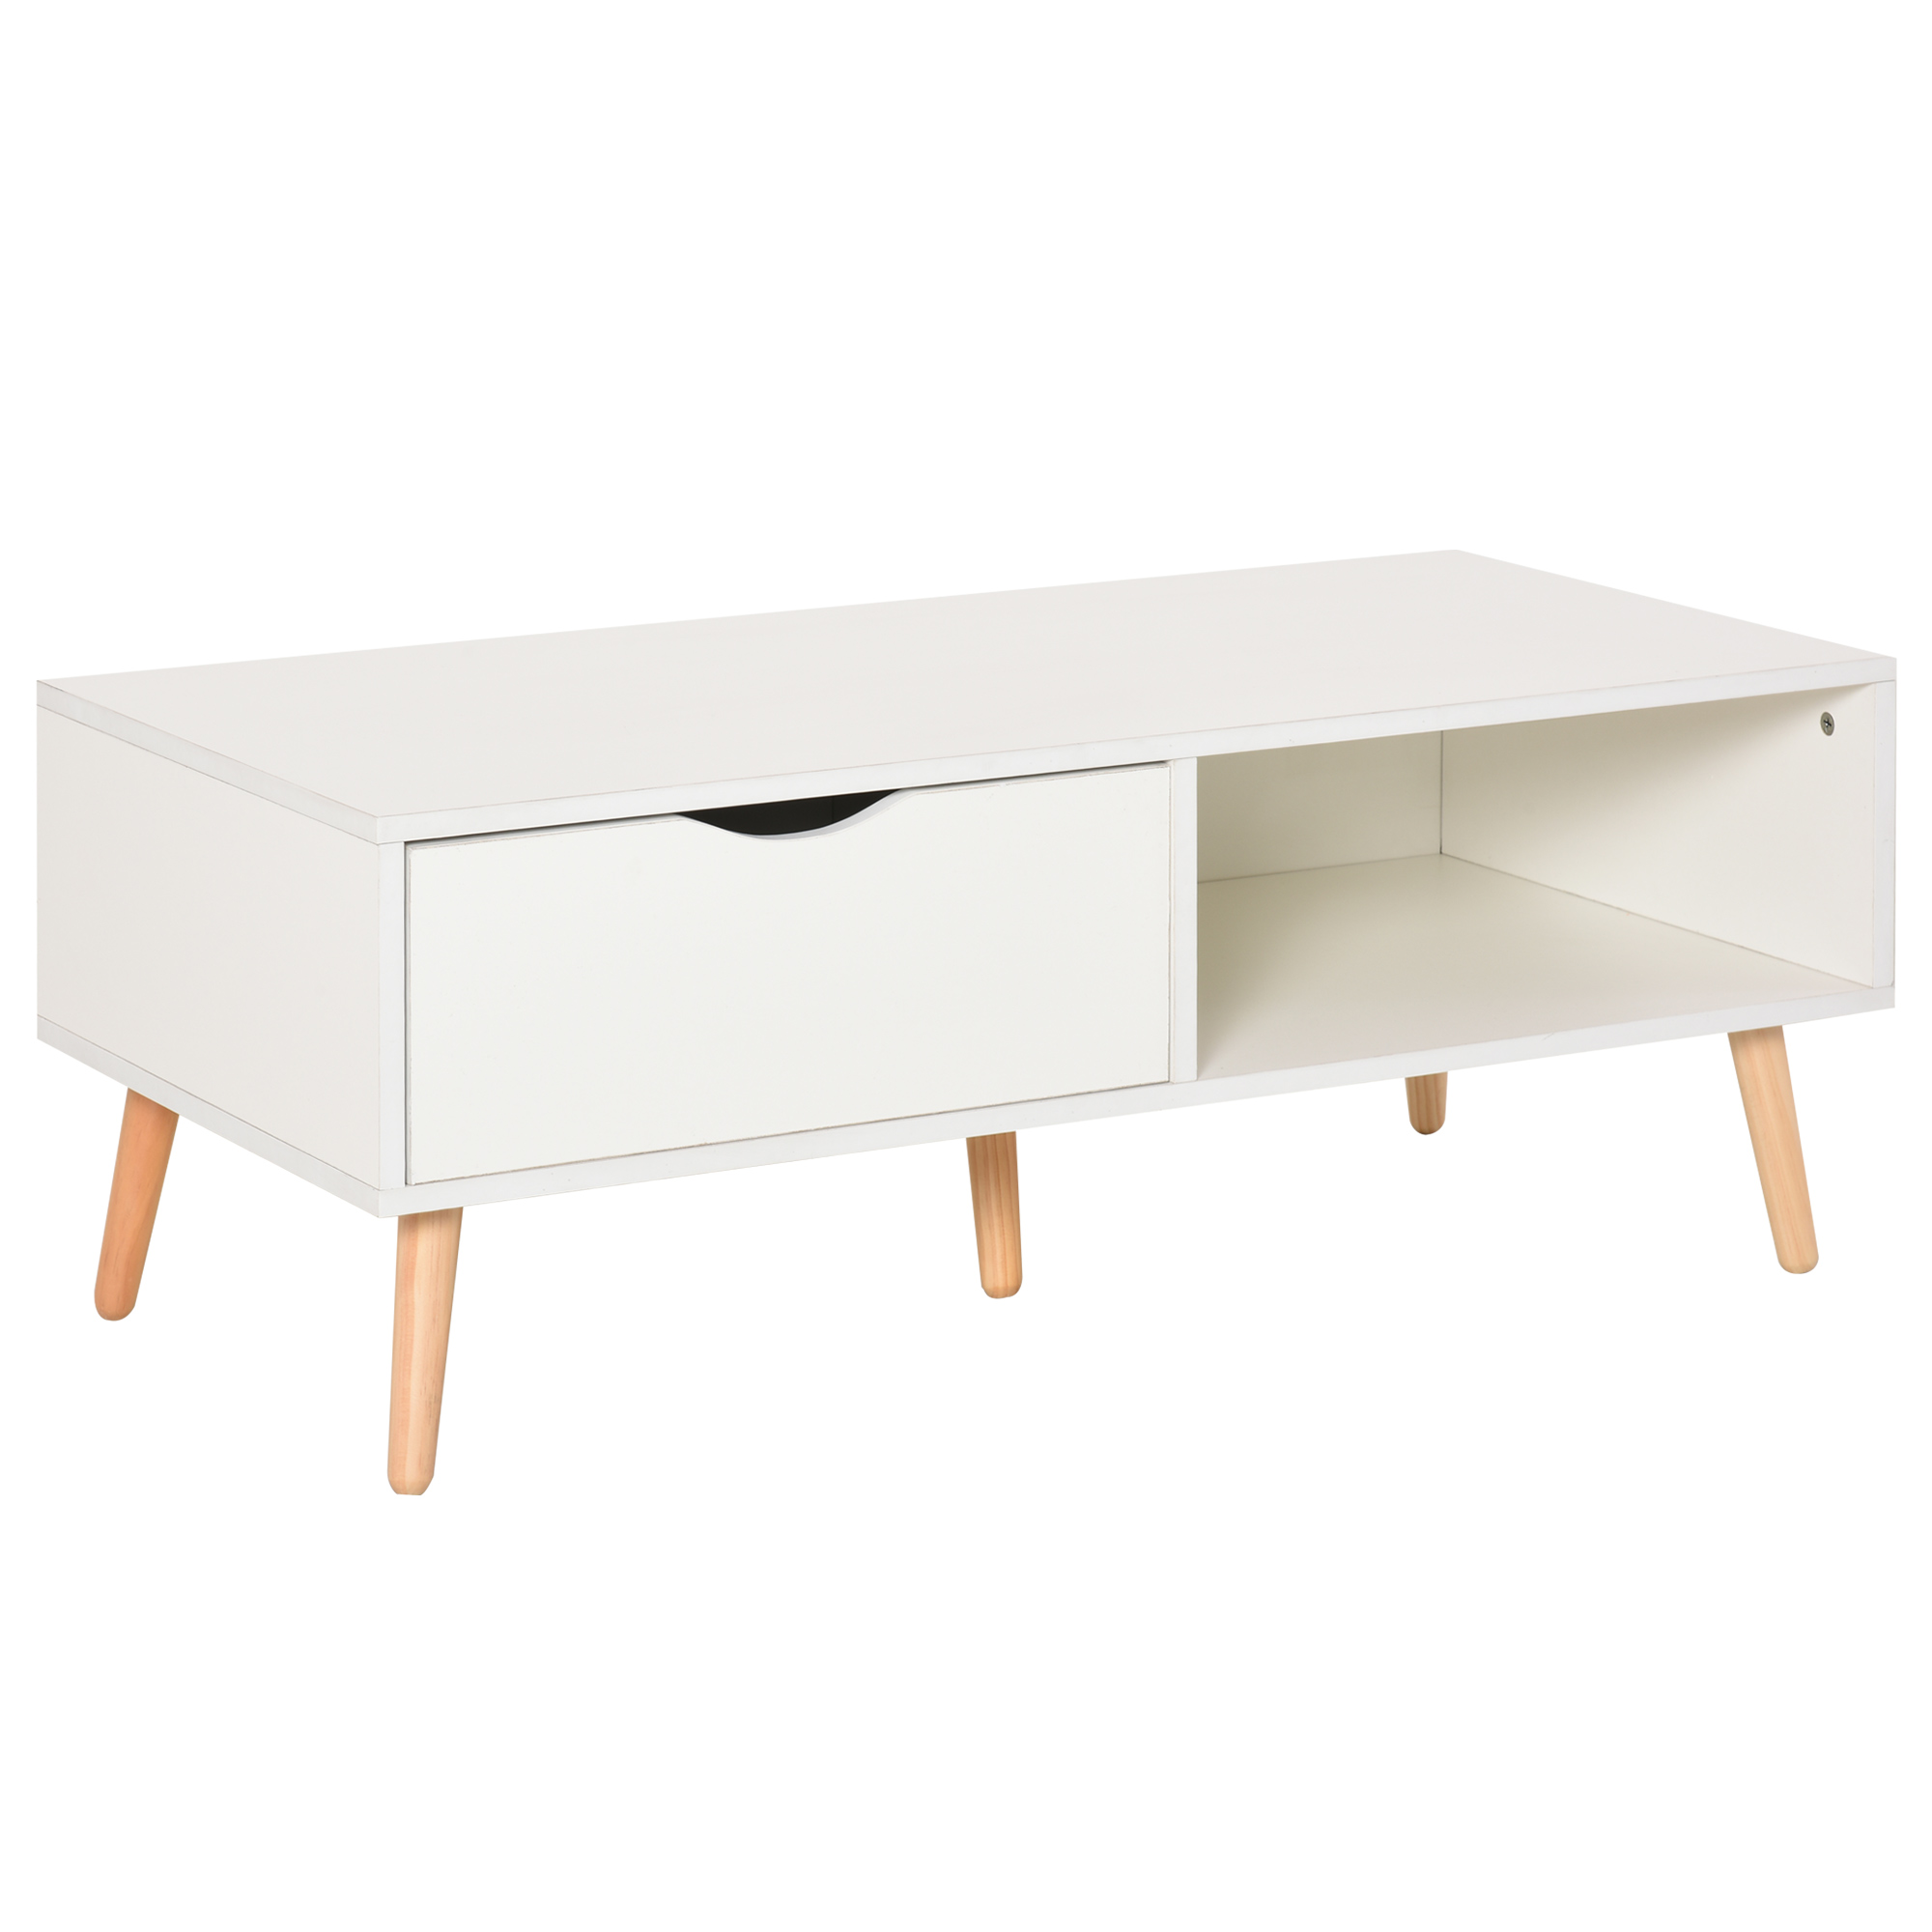 Table basse rectangulaire style scandinave blanc